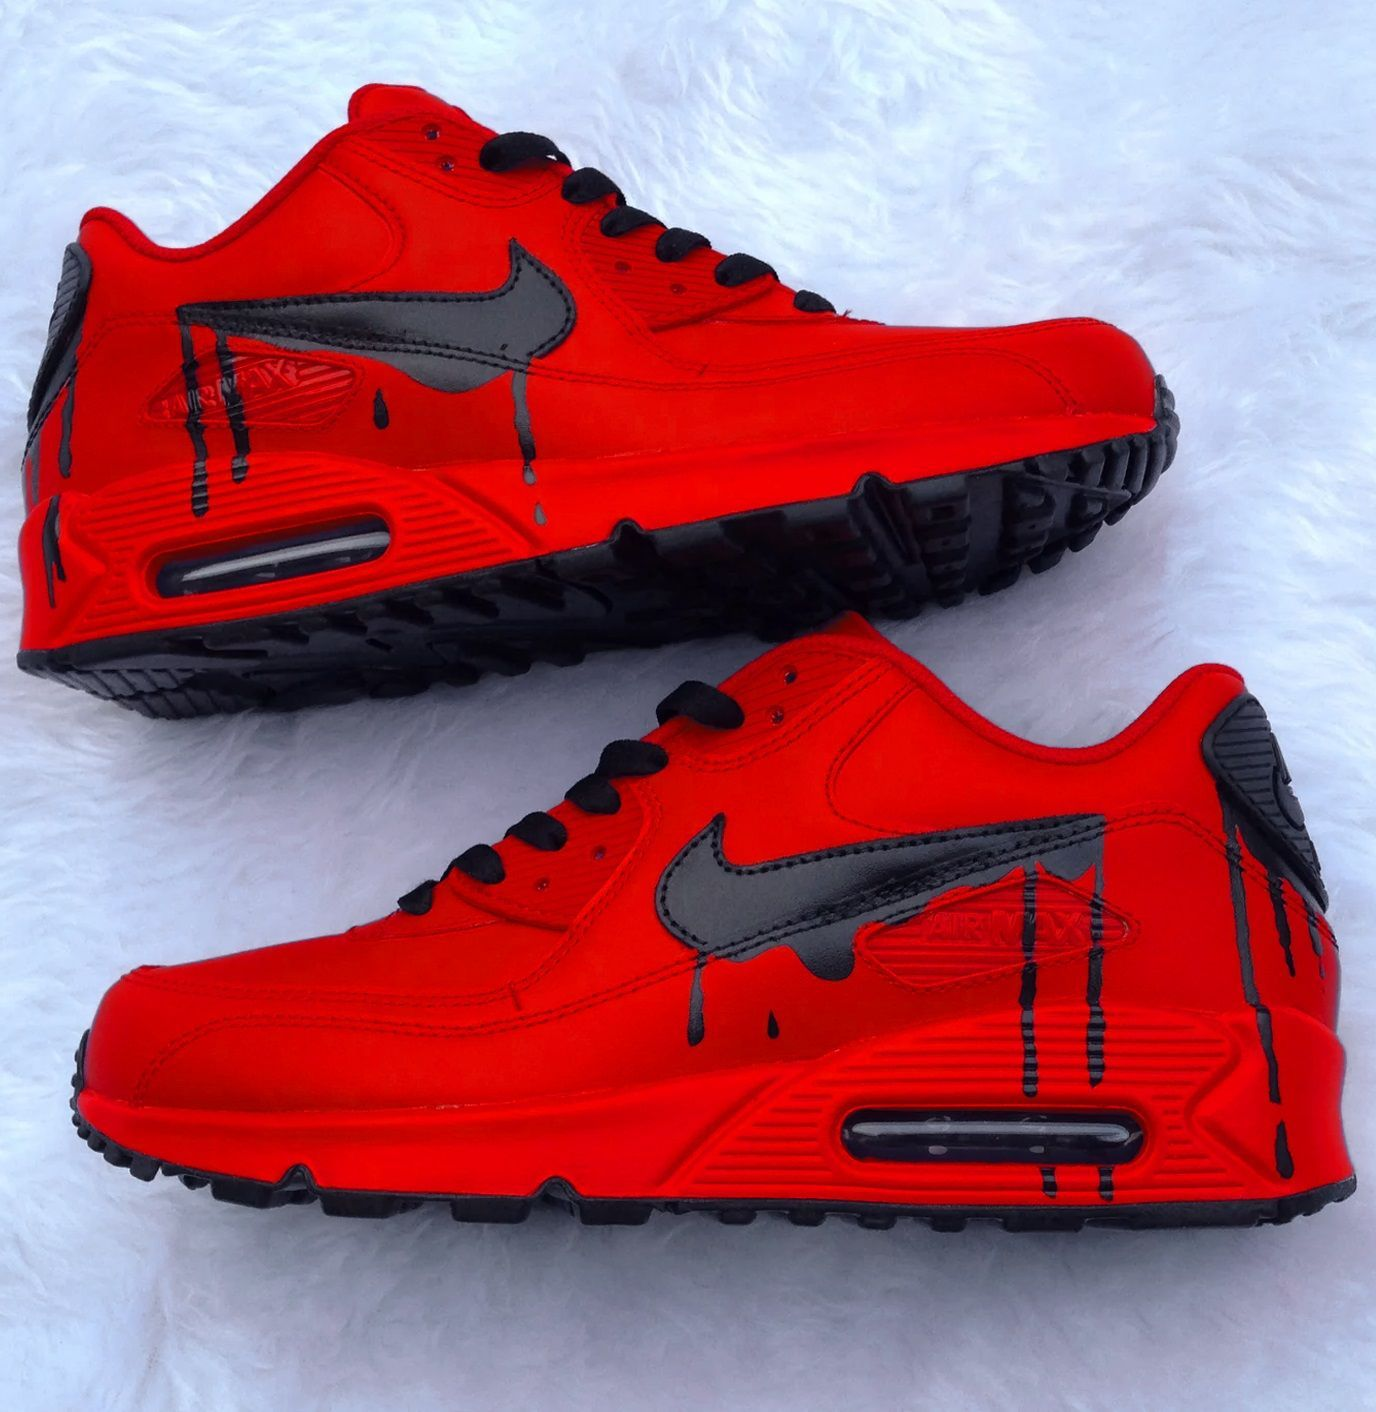 b1142116f9bf1 ... shoes. Red Air Max 90 Drip